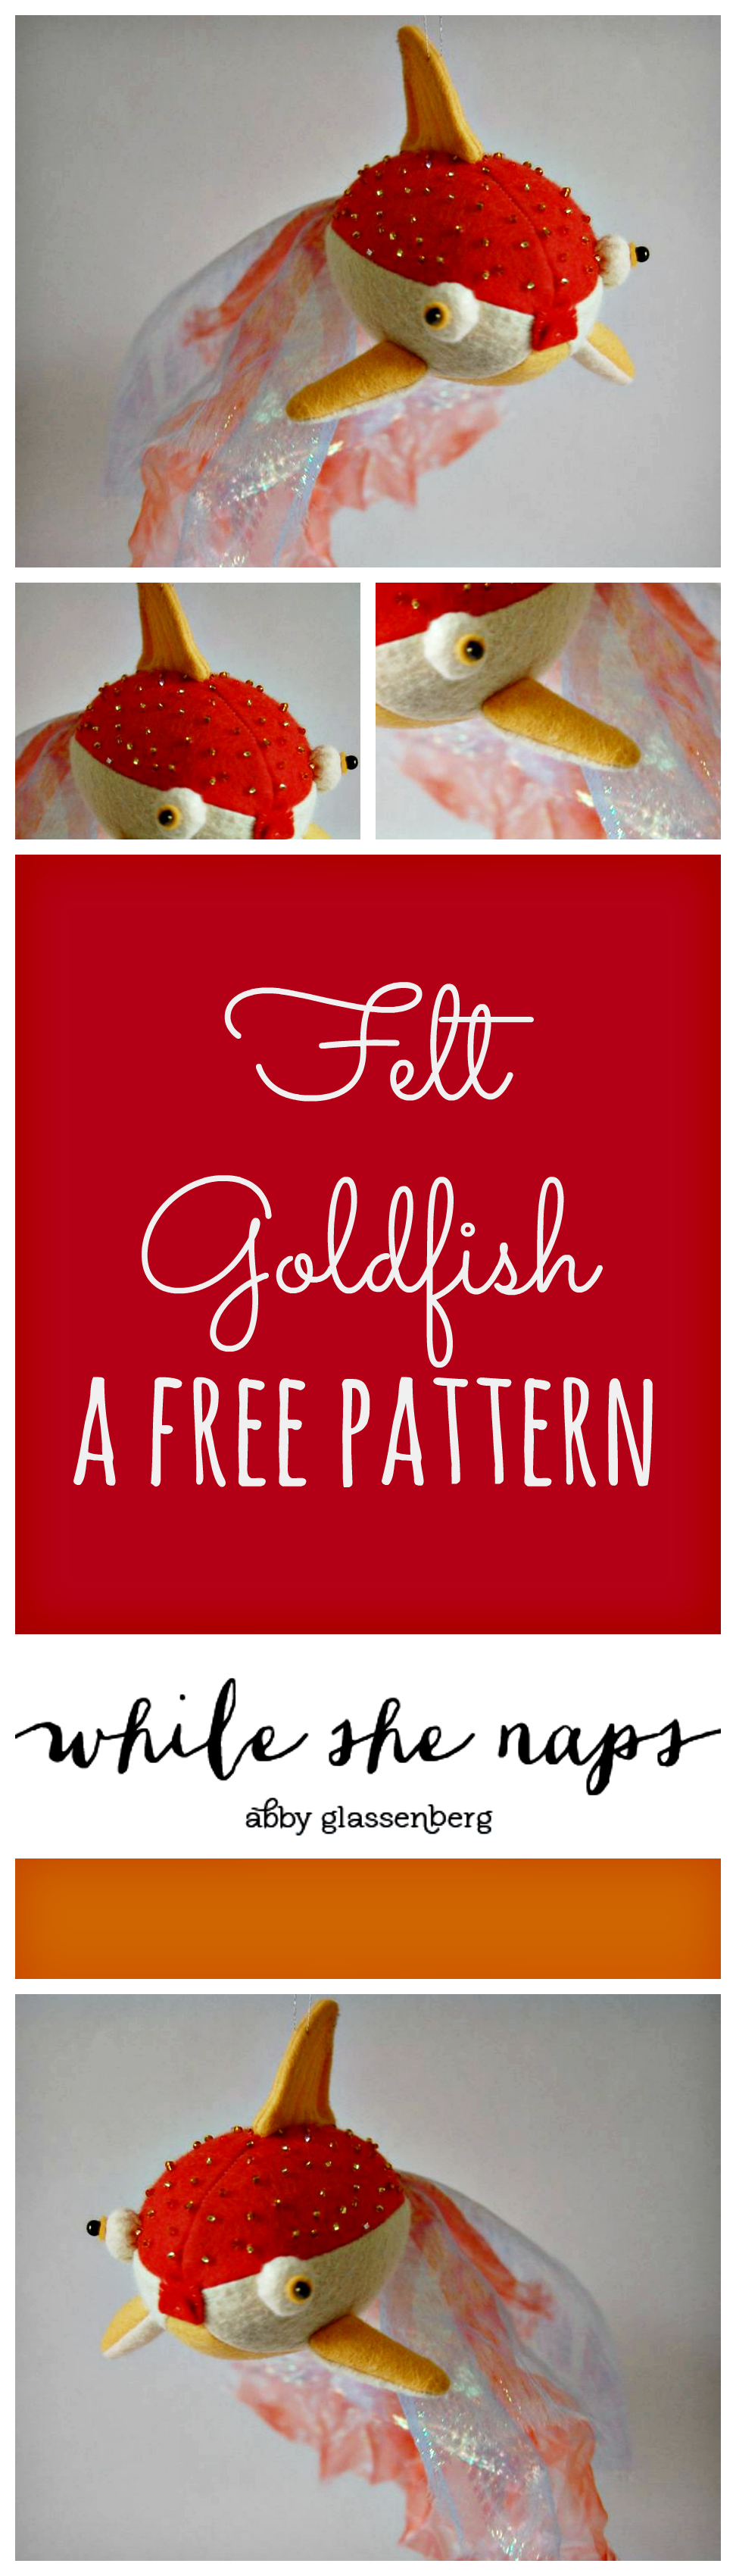 A free pattern for a felt Goldfish